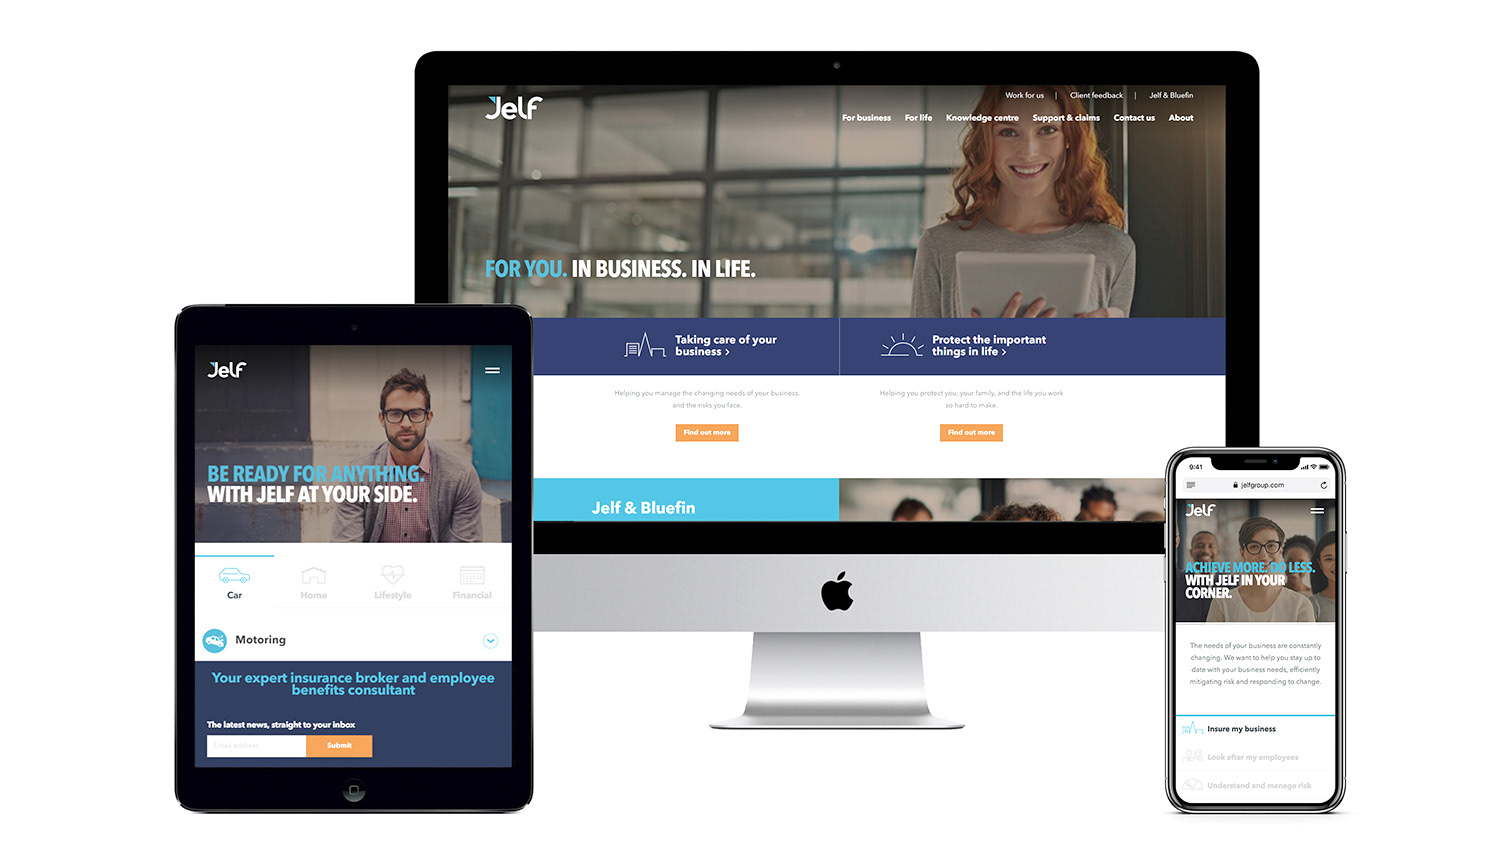 The new responsive site at launch, February 2018. This marked the end of phase 1 of the digital transformation programme.